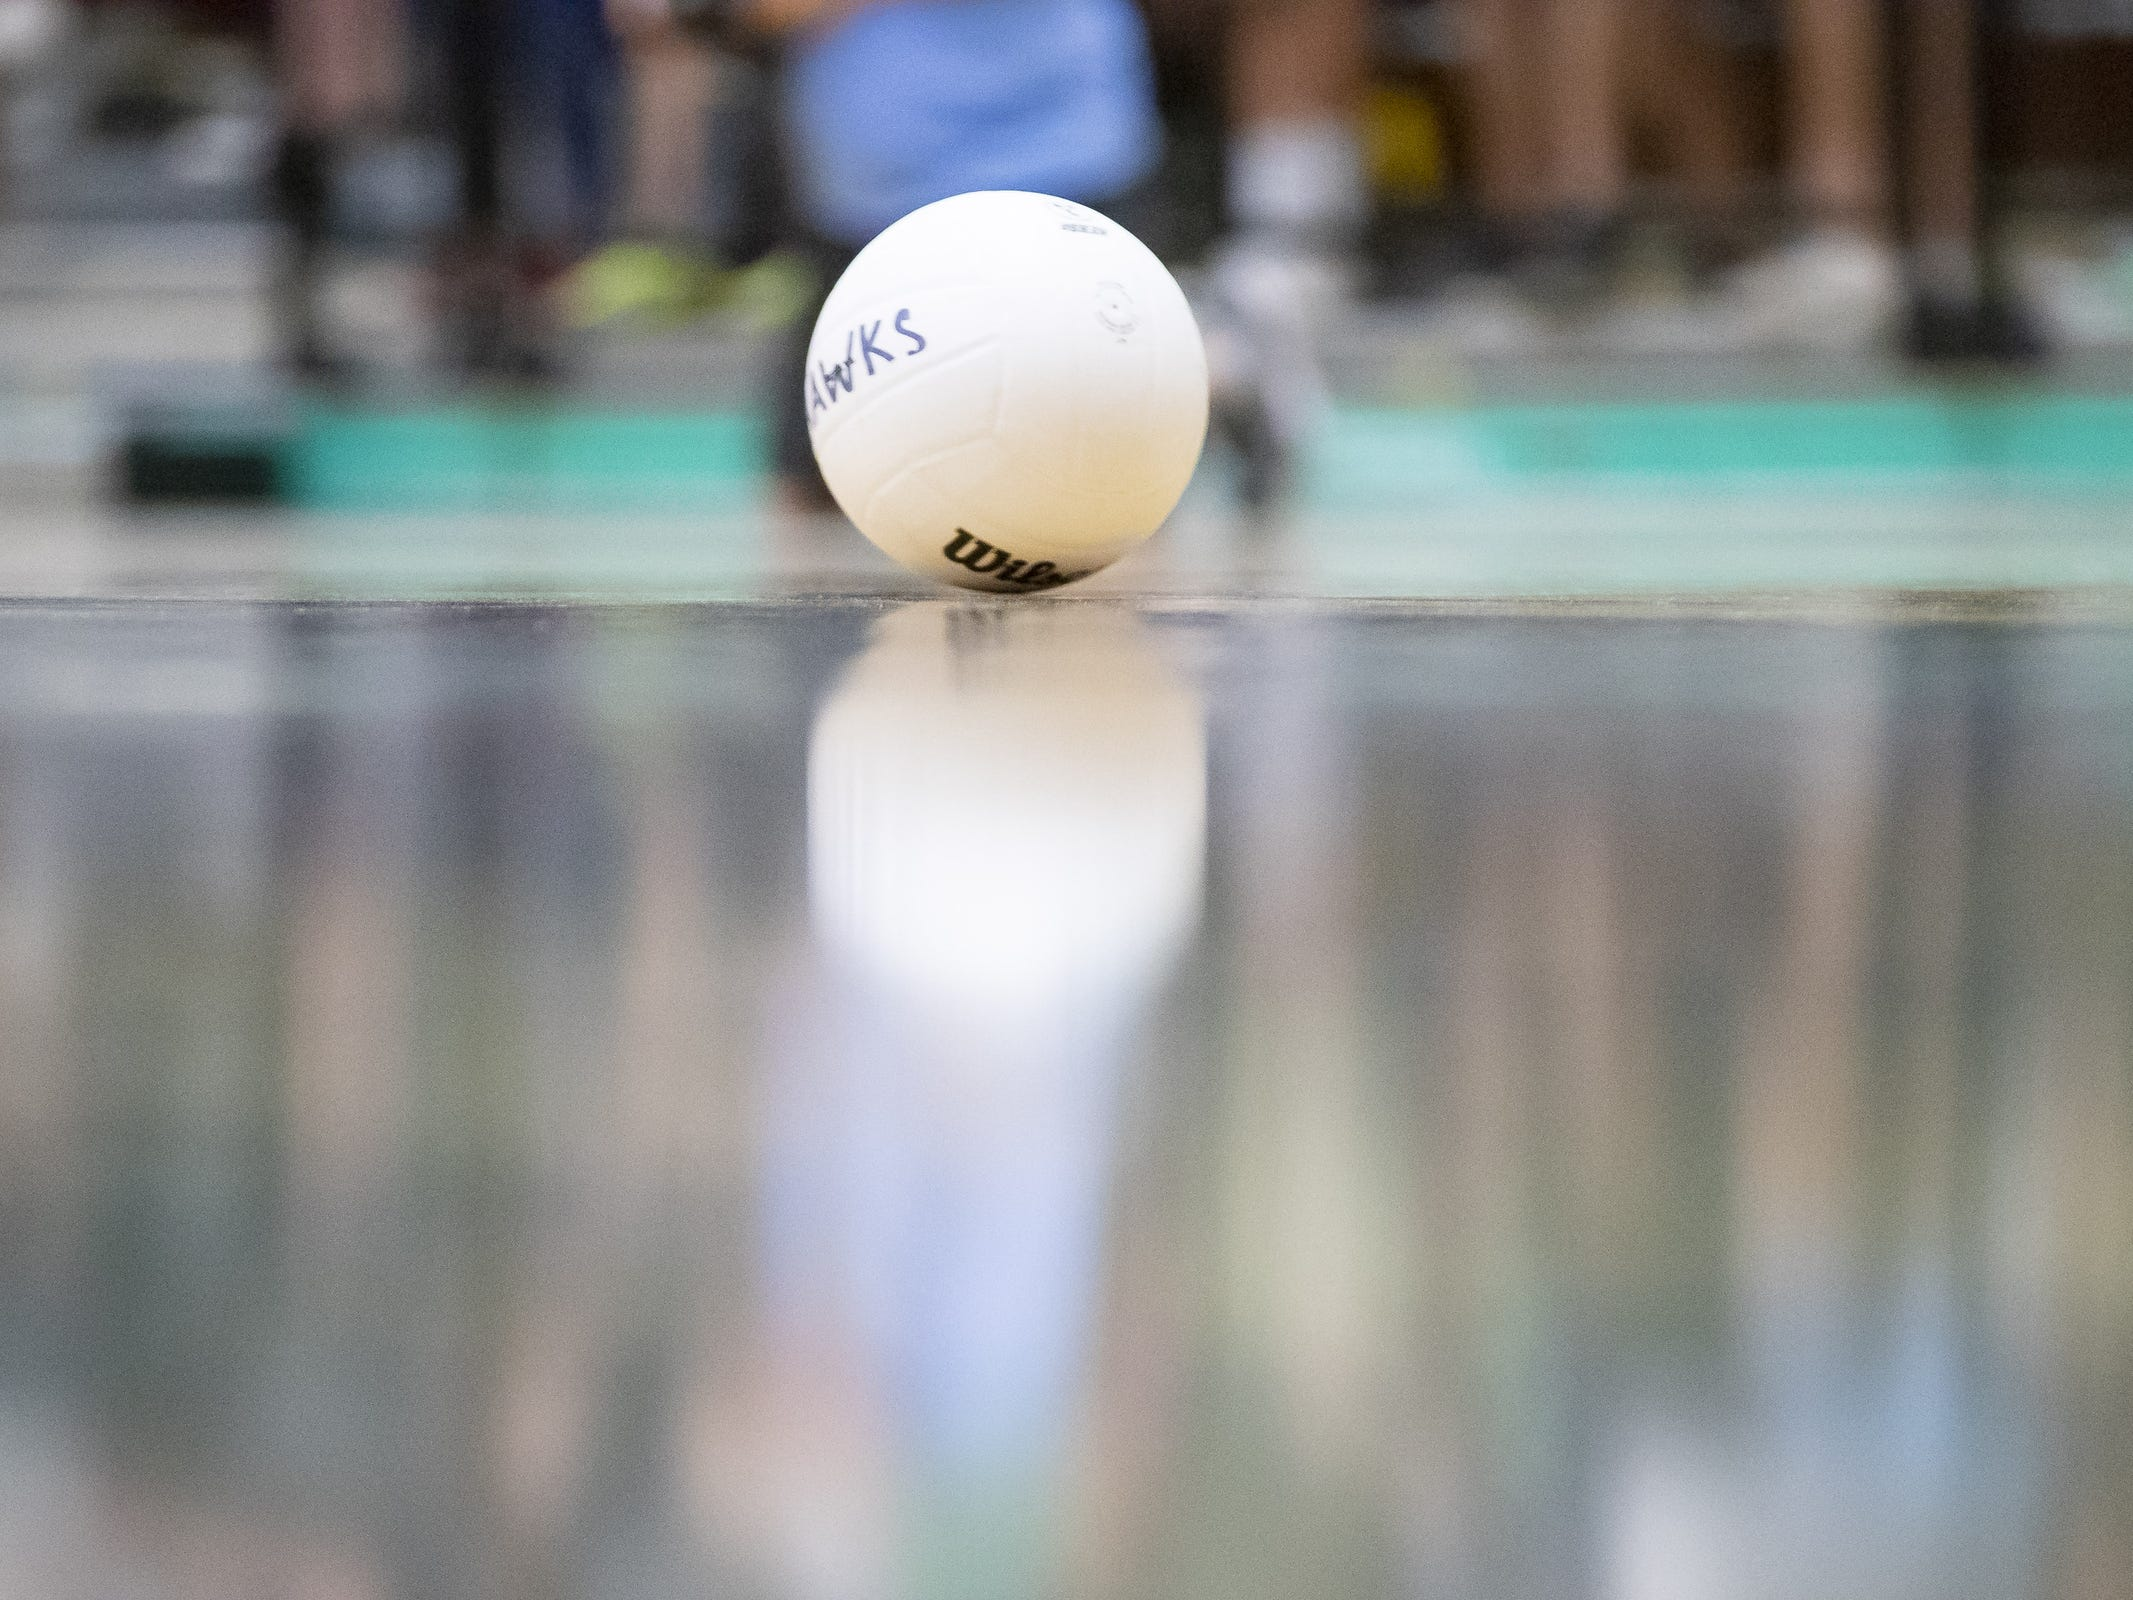 A volleyball on the court during the 5A Boys Volleyball State Championships between the Campo Verde Coyotes and the Tucson Mountain View Mountain Lions at Higley High School on Saturday, May 11, 2019 in Gilbert, Arizona.